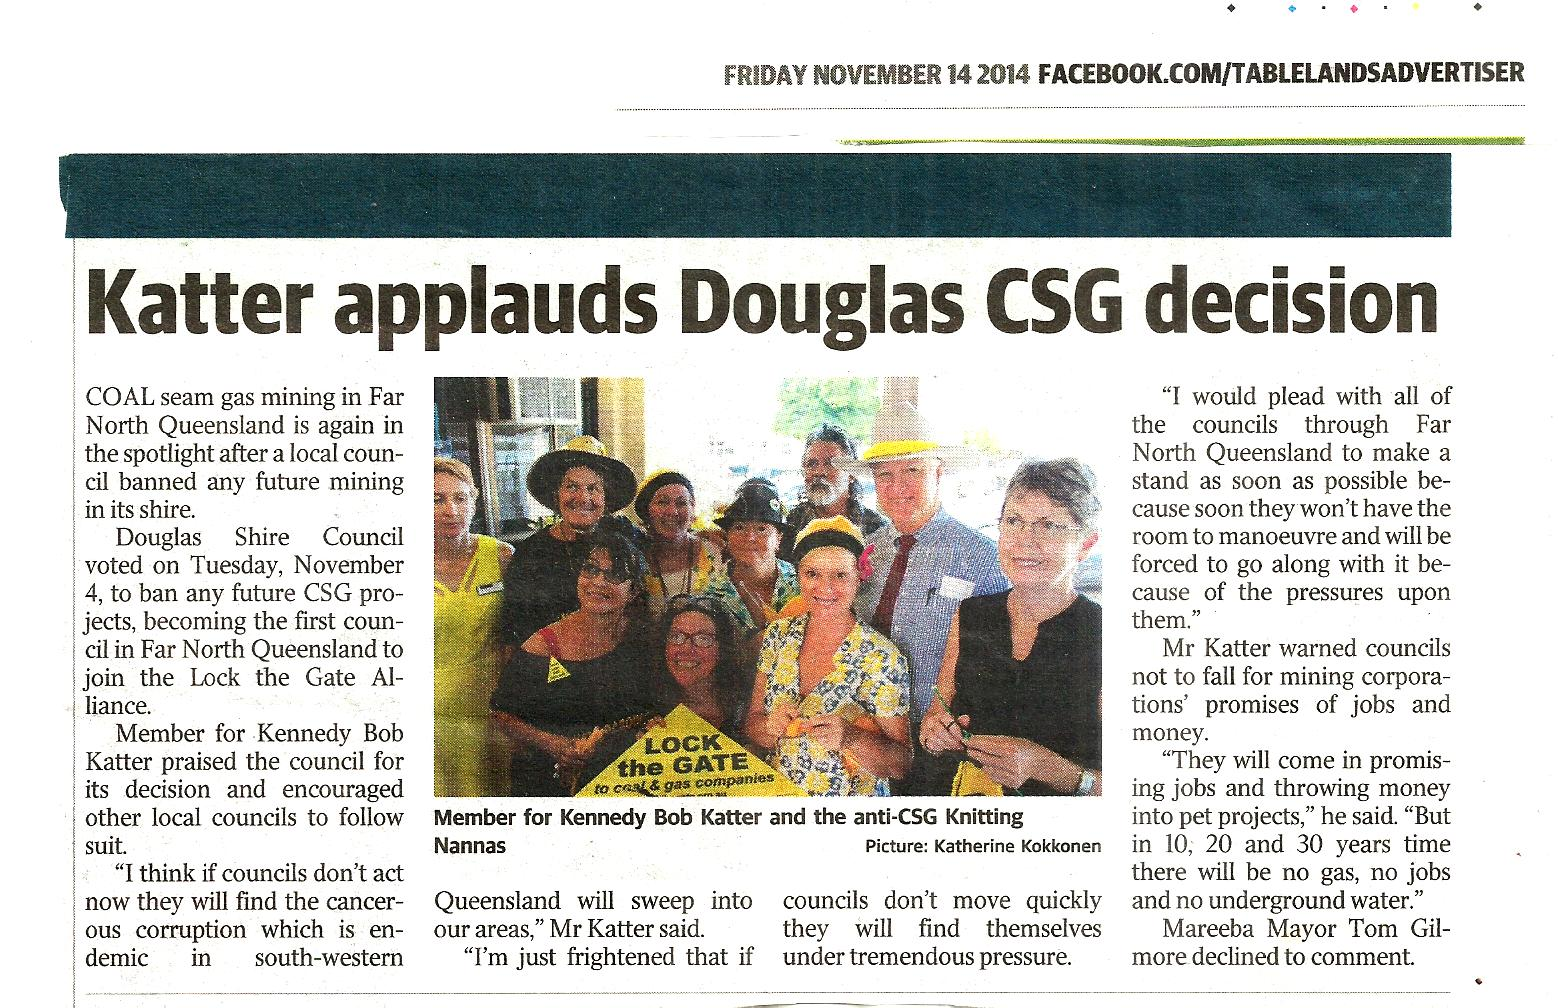 Tablelandsadvertiser-14Nov-2014.jpg